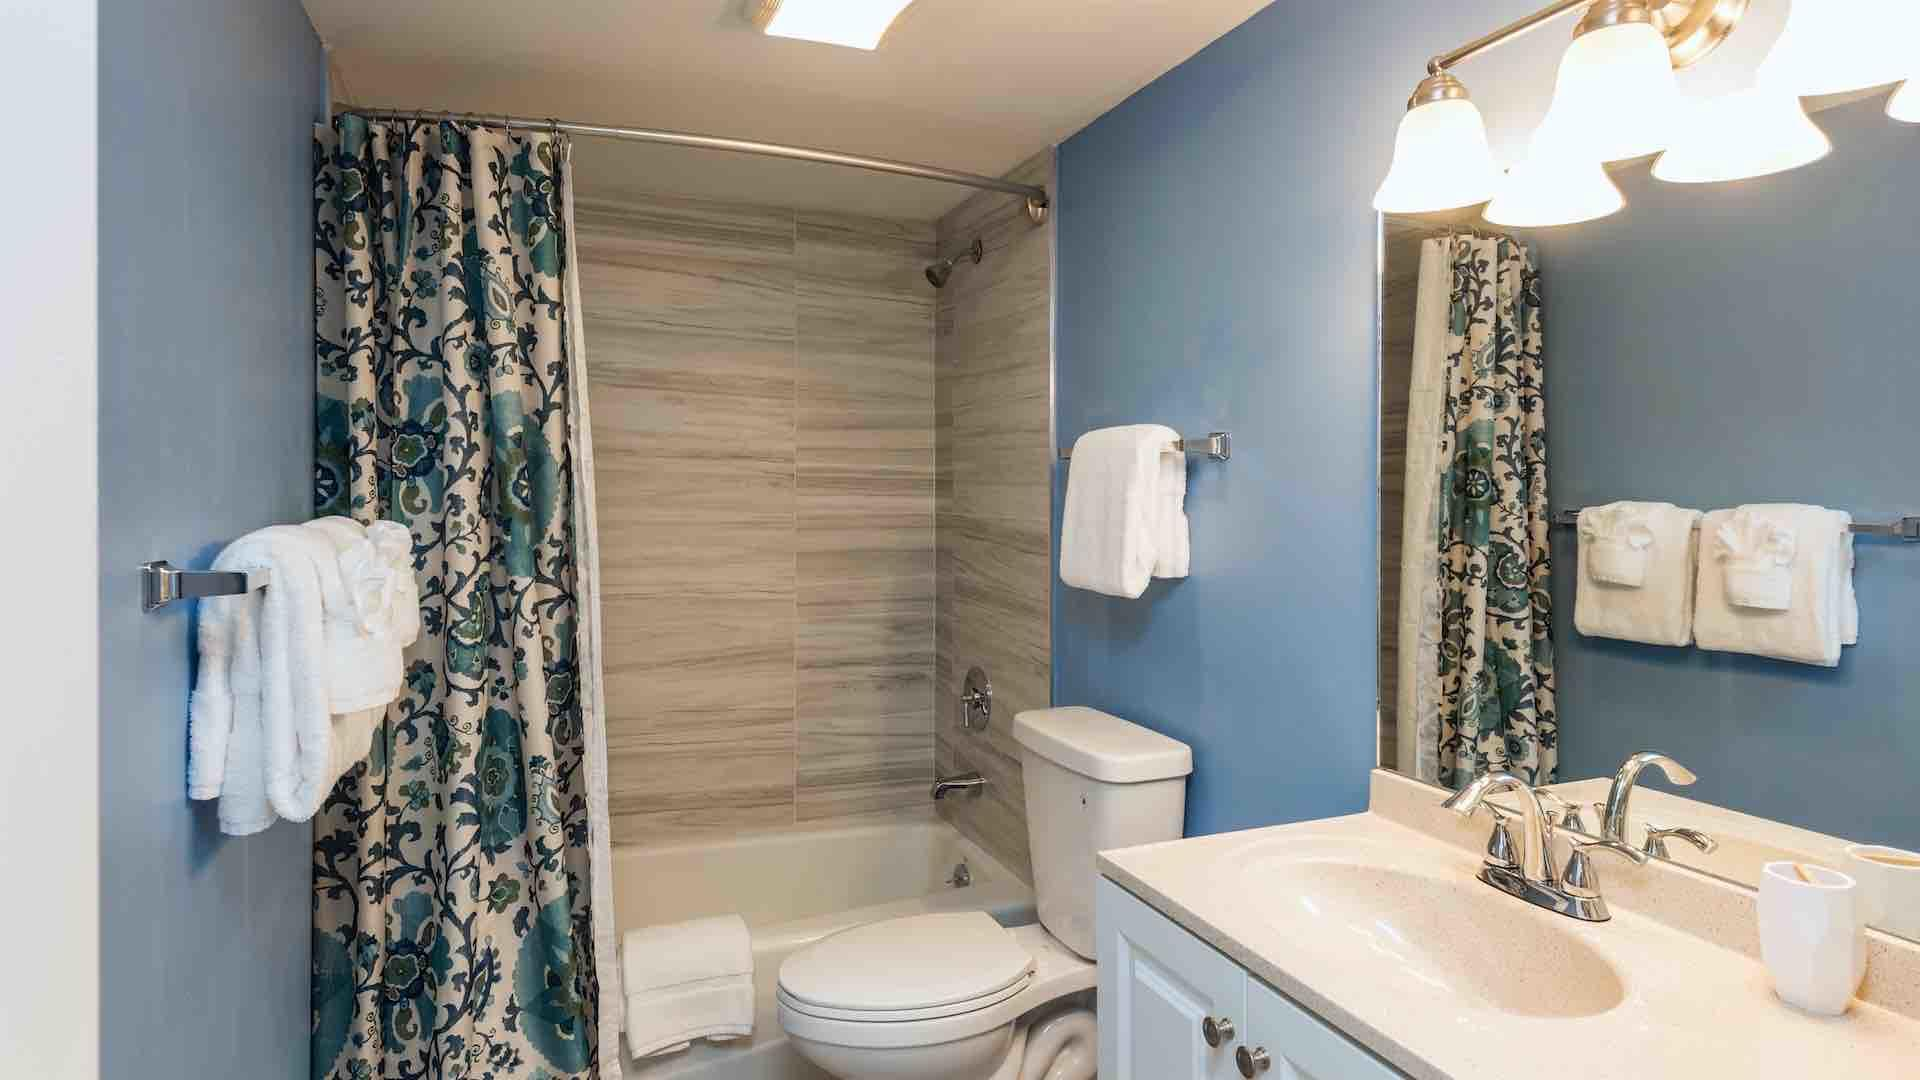 The second bathroom has a shower and tub combo...